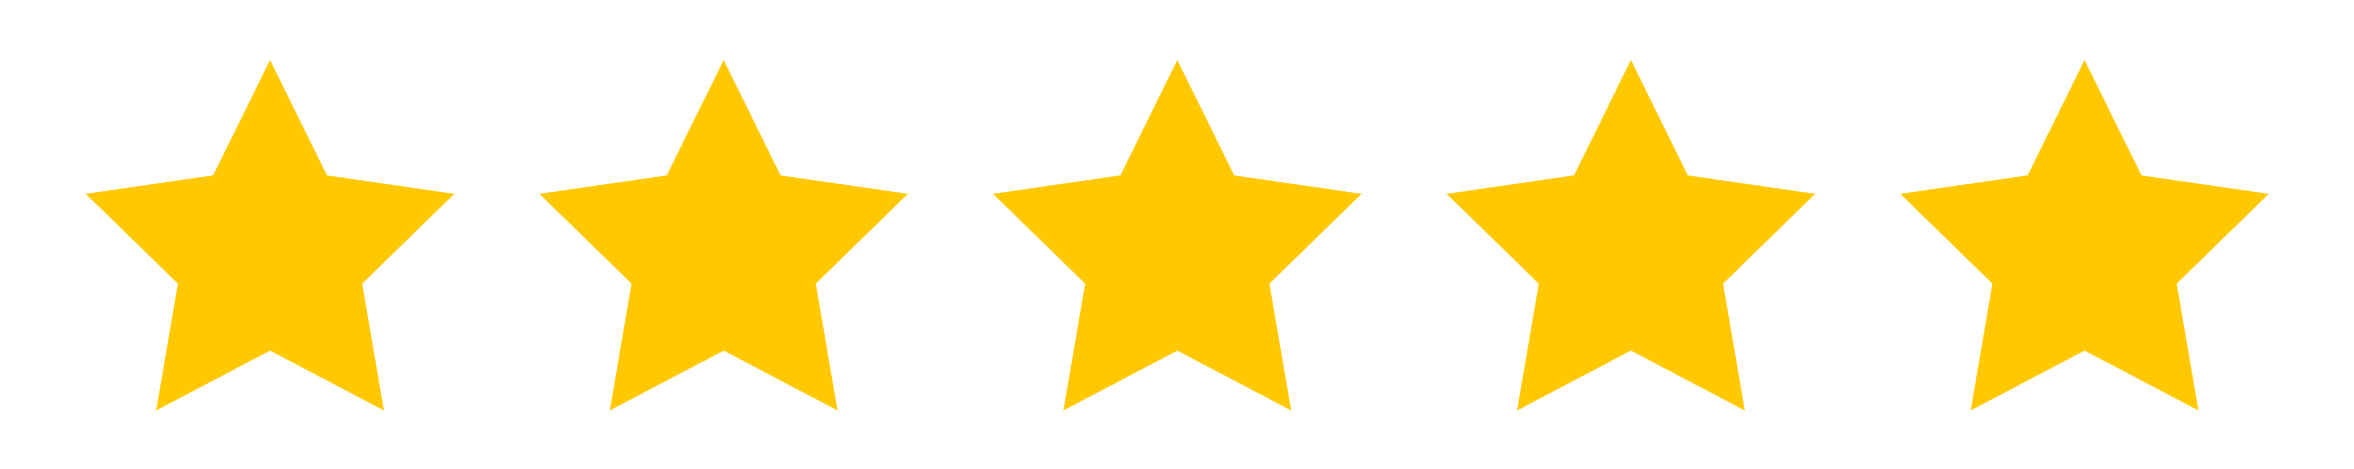 Reviews star rating from customer for A-1 Self Storage in San Diego, California